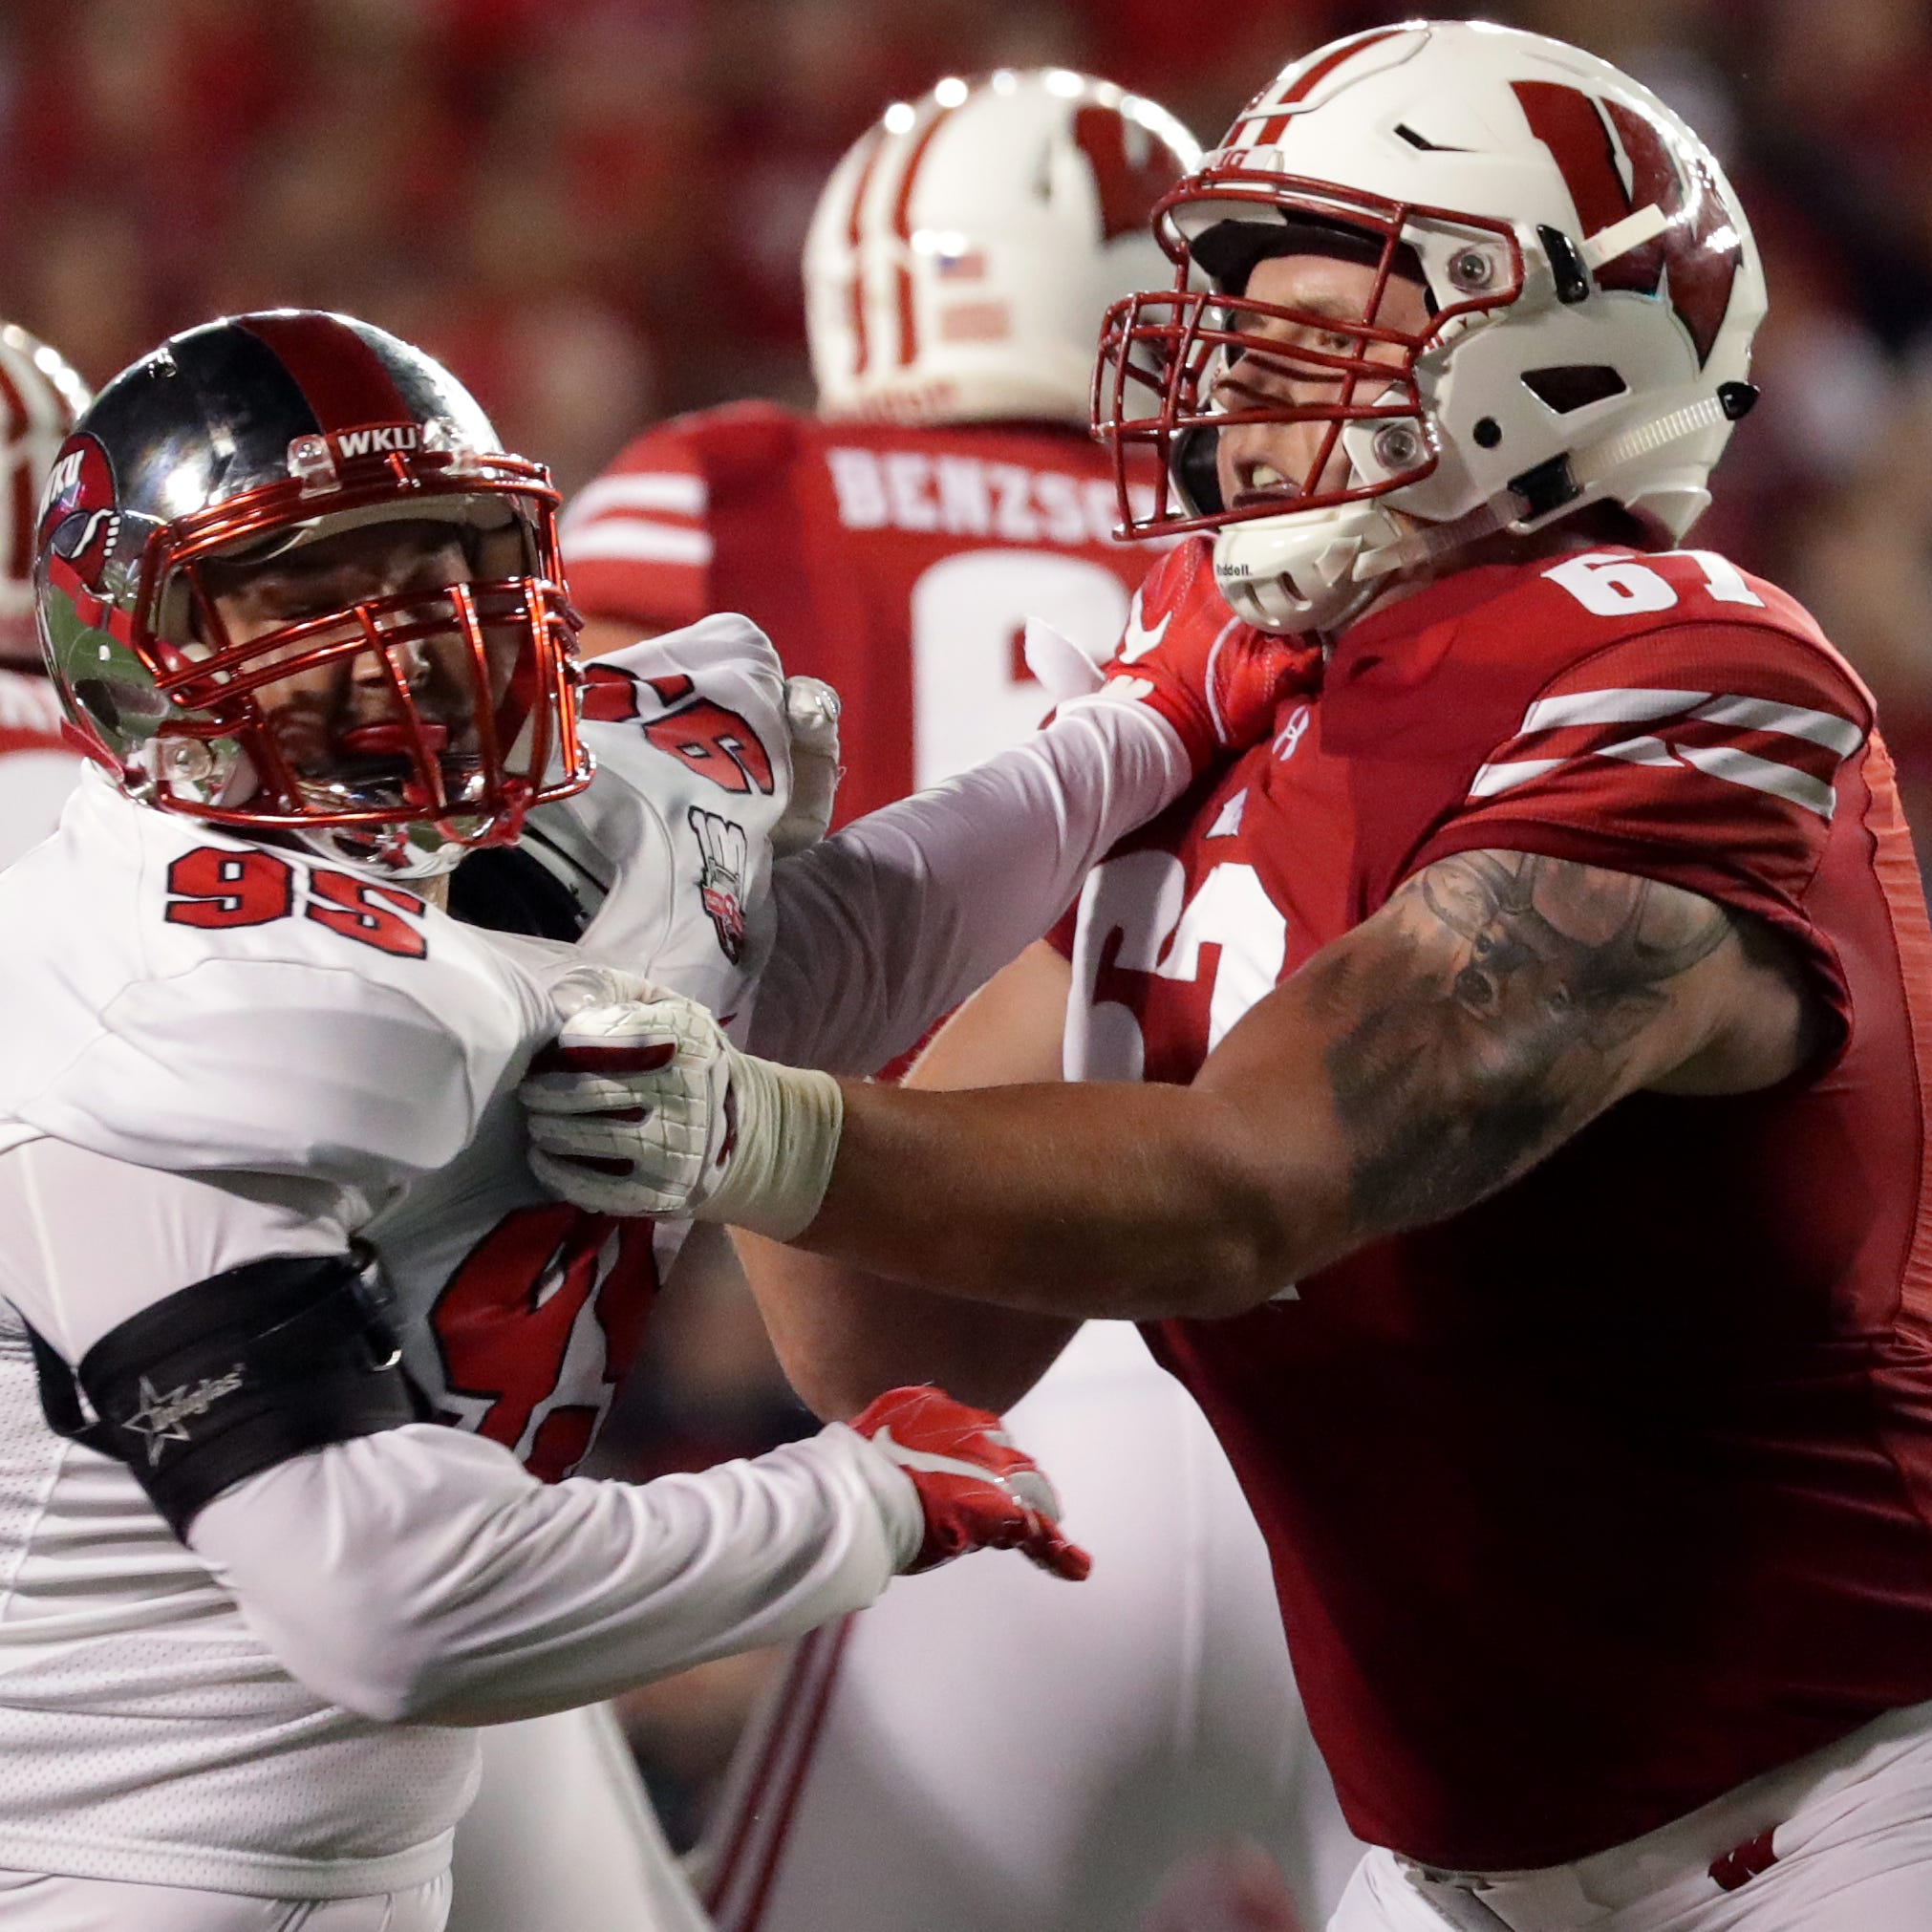 Seymour's Jon Dietzen, who has battled injuries at Wisconsin, opts to walk away from football